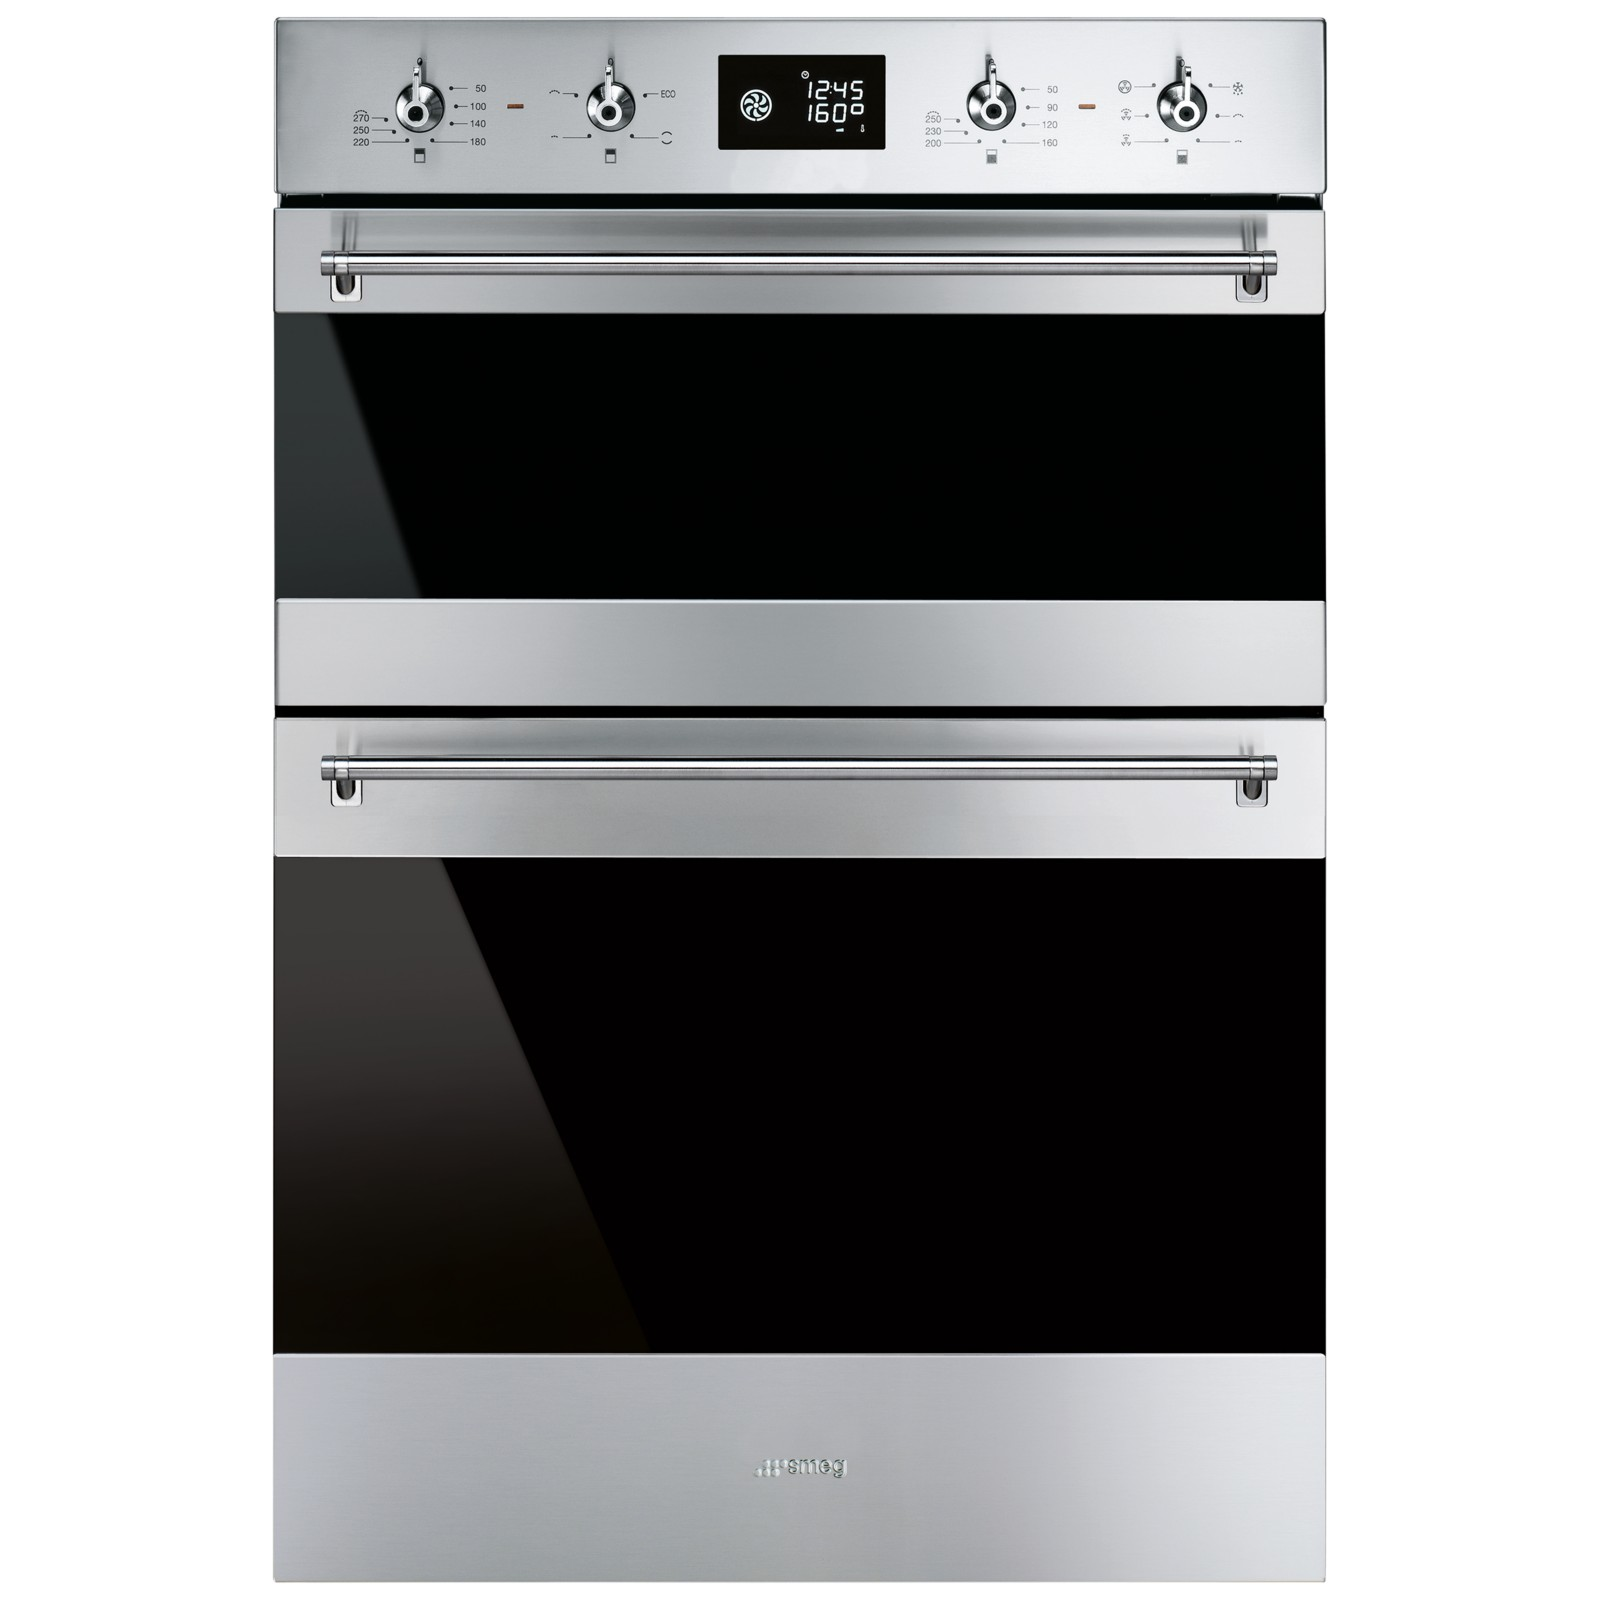 Smeg DOSF6390X Classic Built-In Multifunction Double Oven